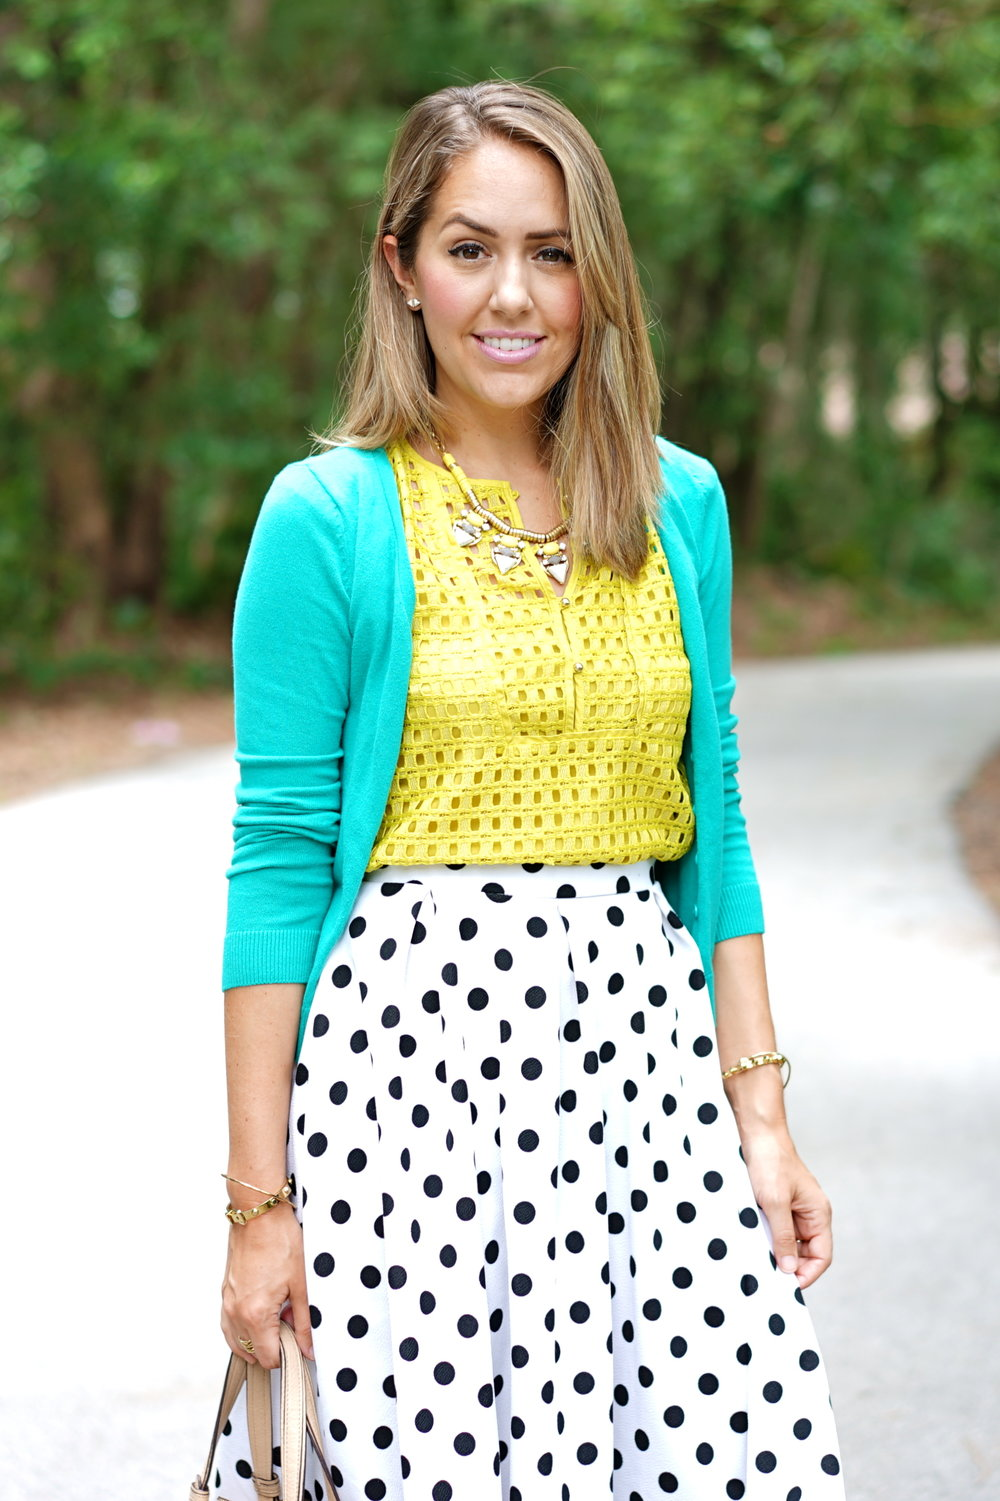 Green cardigan, yellow top, polka dot skirt